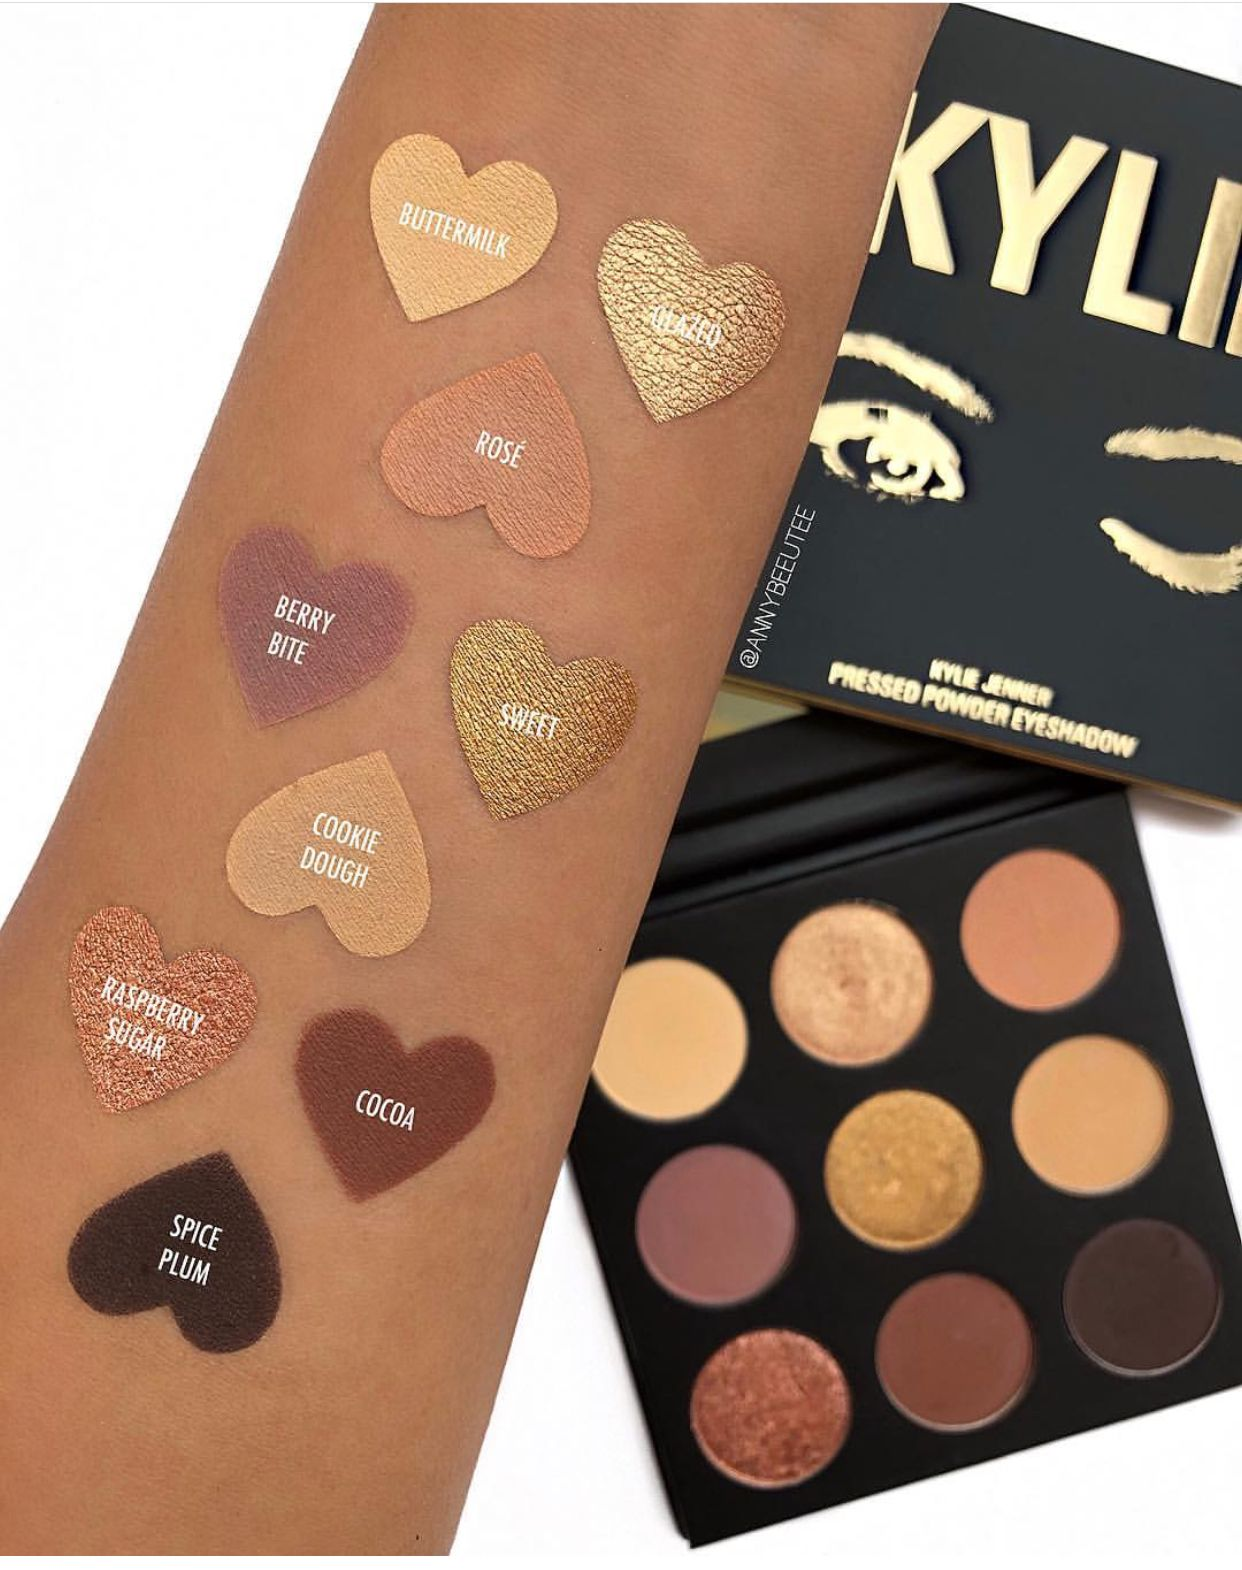 Kyshadow - The Sorta Sweet Palette by Kylie Cosmetics #4